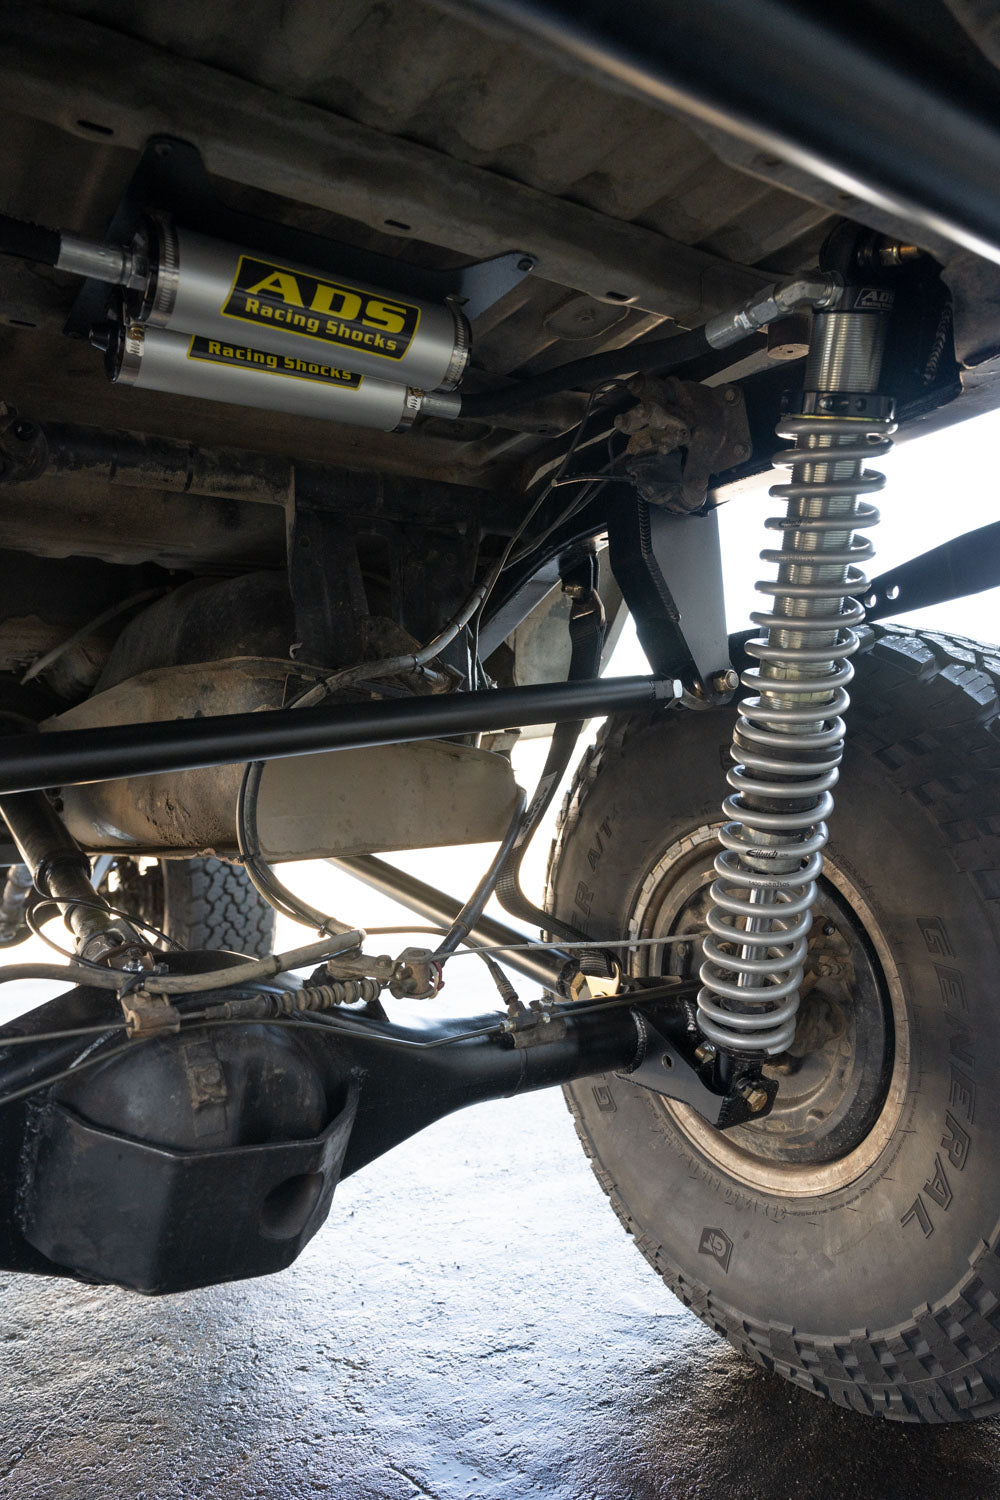 rock and road 4runner suspension 3 link